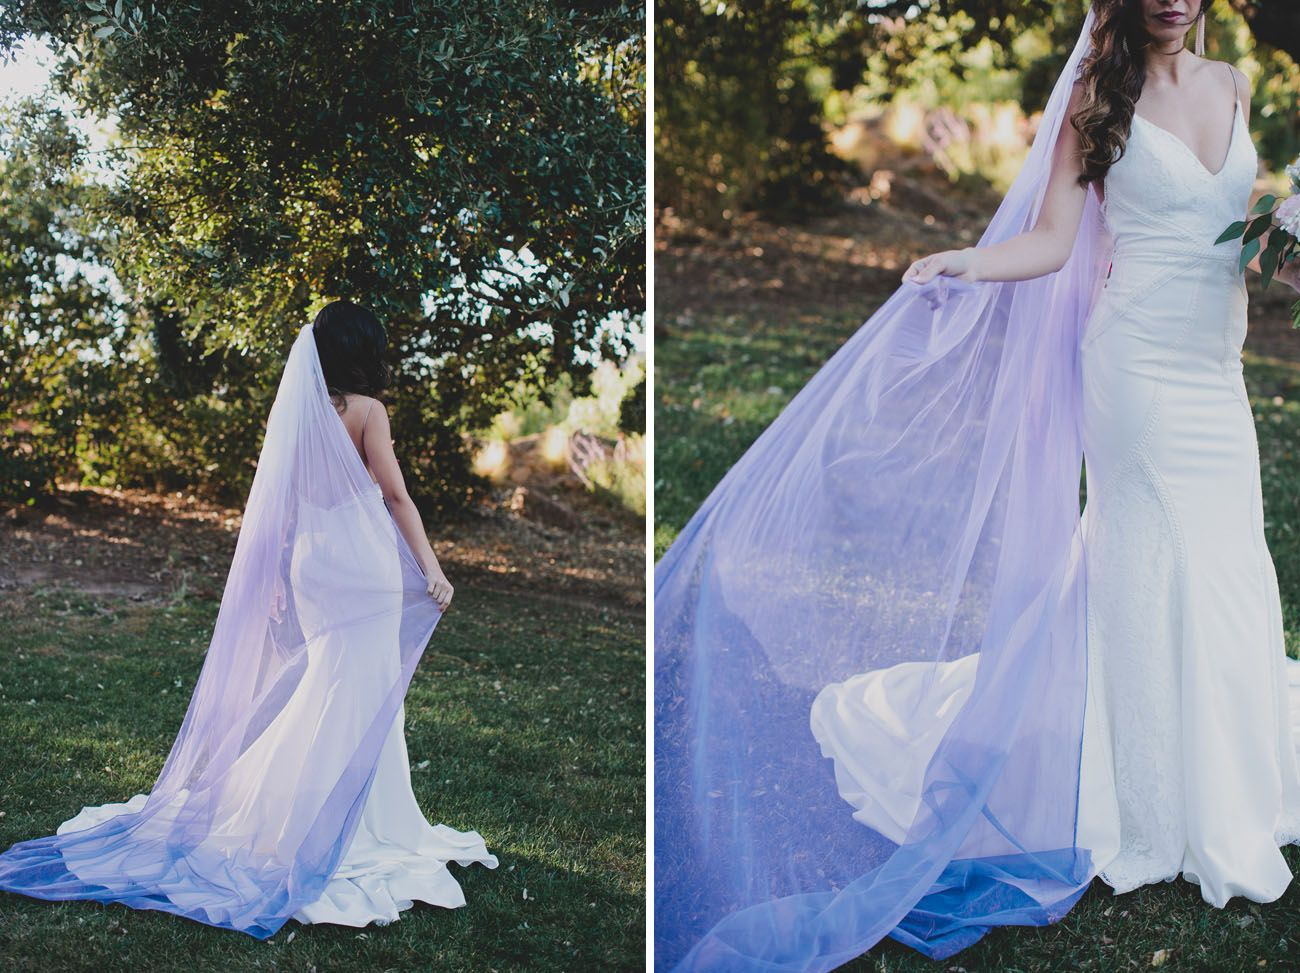 Diy Your Own Ultra Violet Veil Diy Wedding Veil Wedding